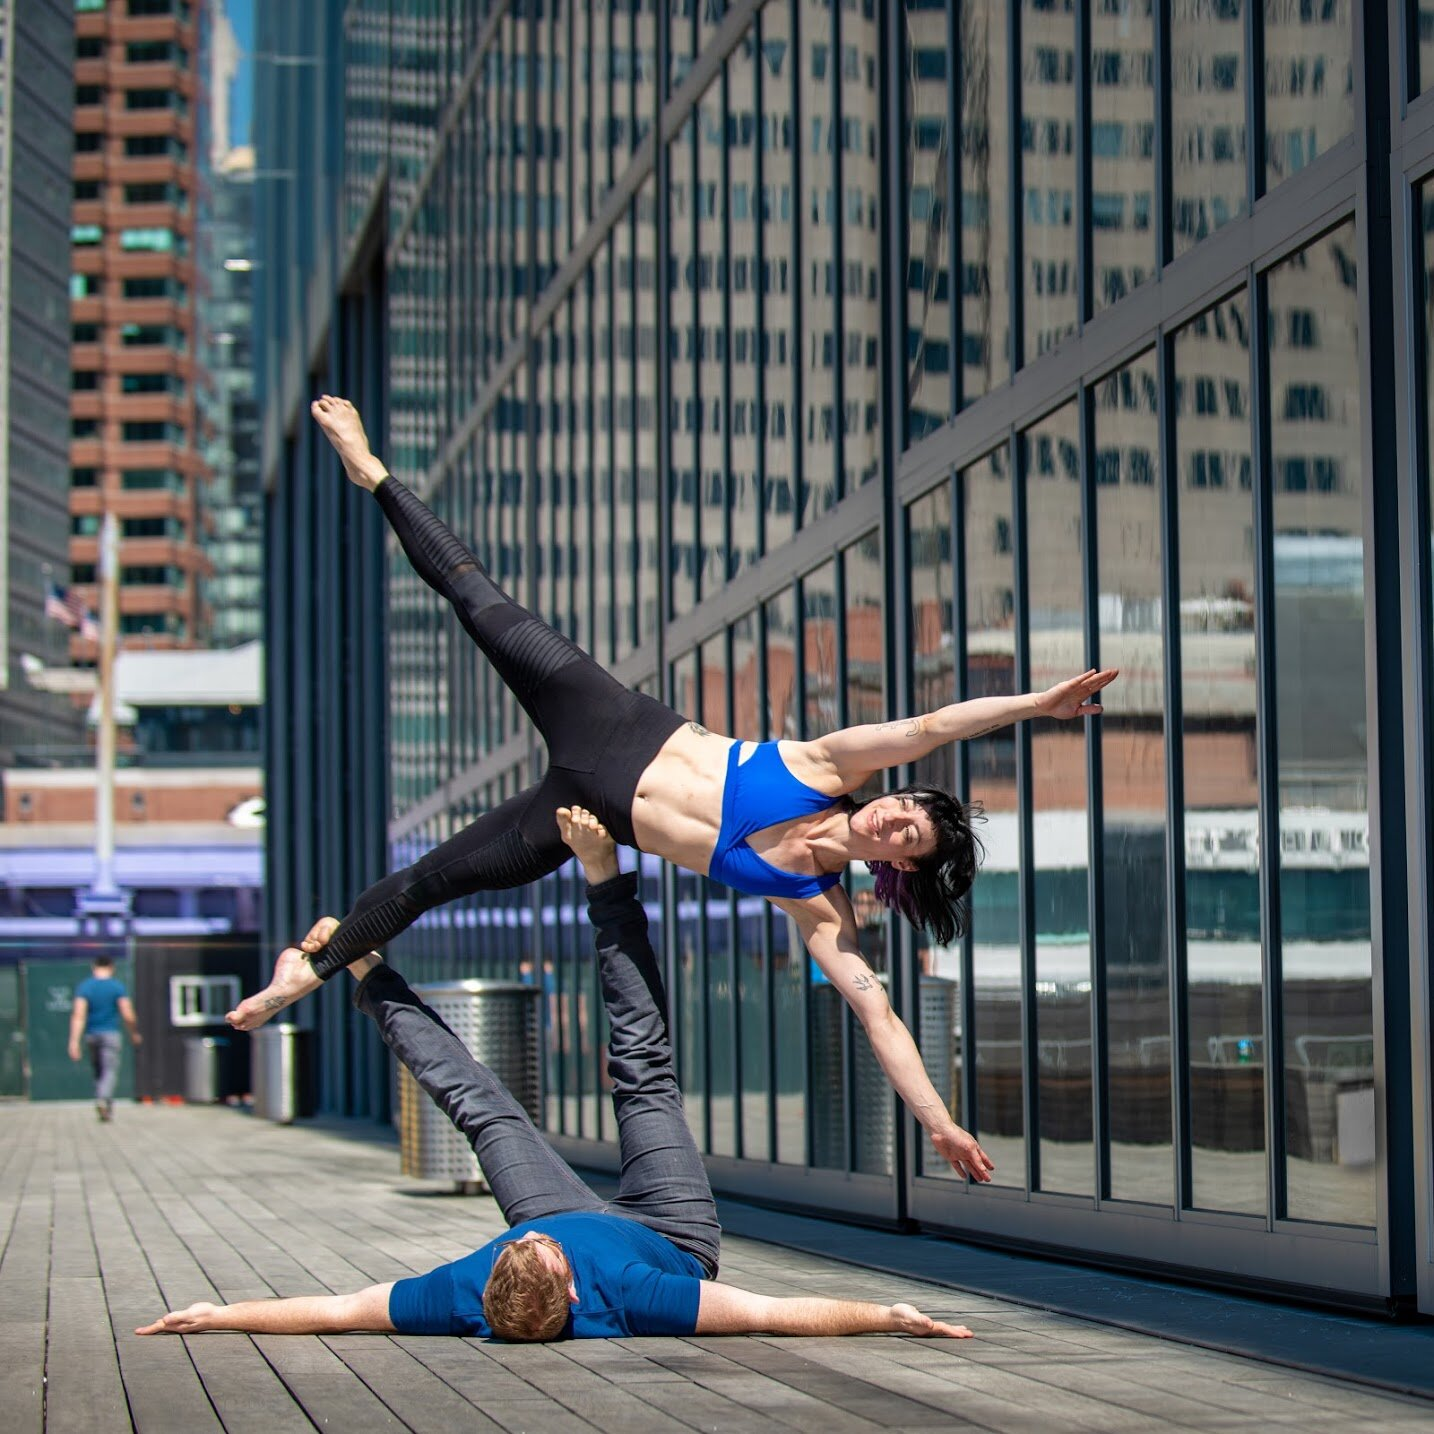 Emily's movement practice combines yoga, dance, partner acrobatics, flexibility training, and handstands with her knowledge of physiology and body mechanics.